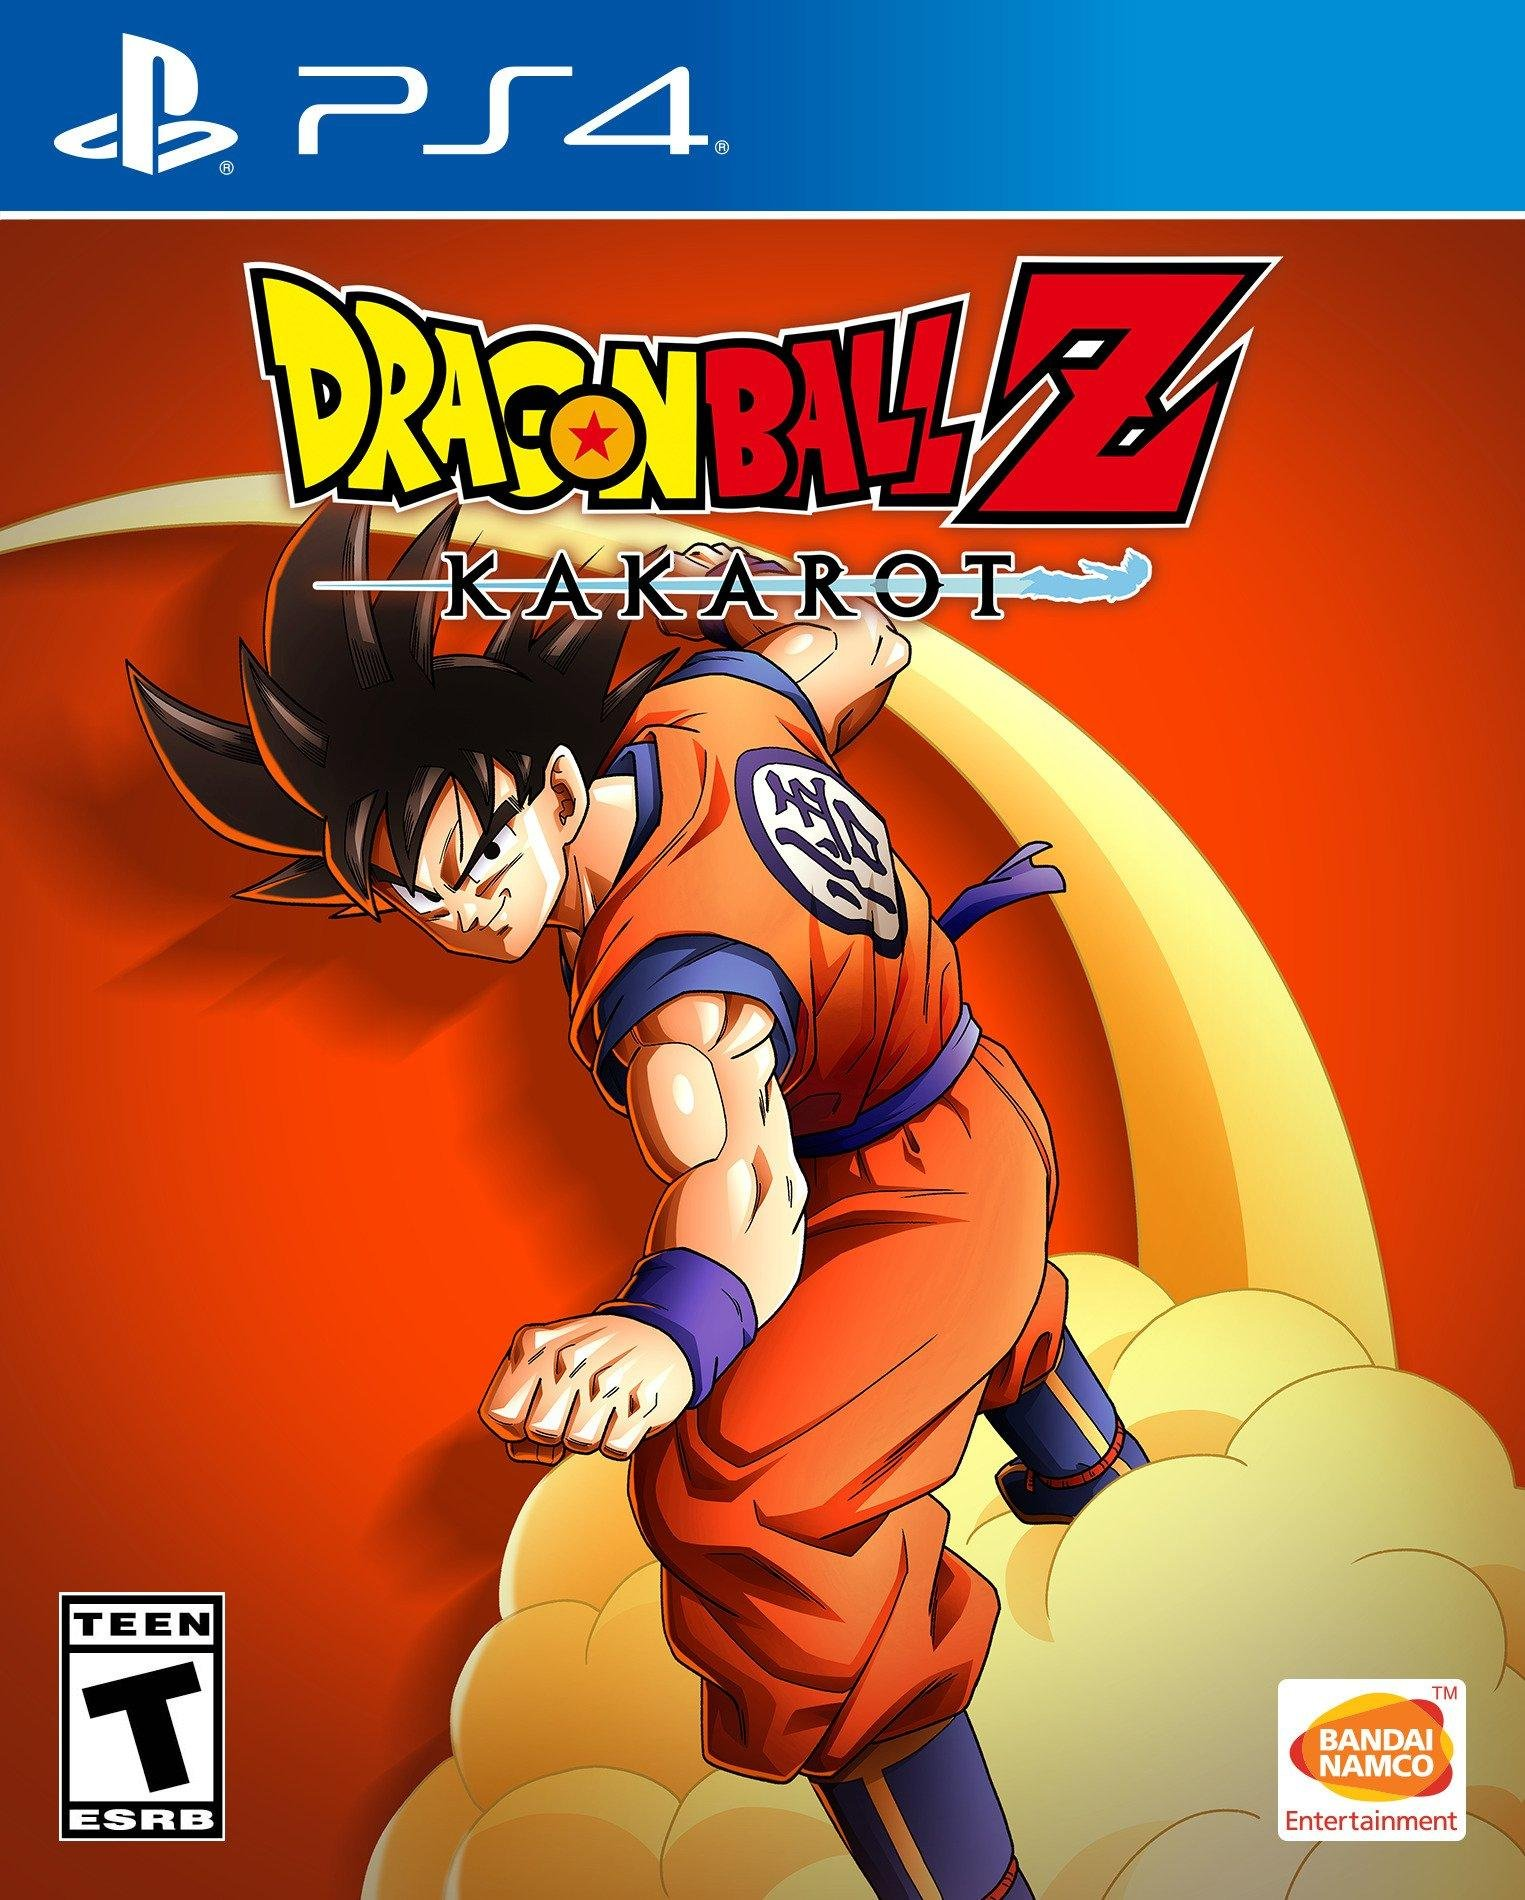 Dragon Ball Z: Kakarot [PS4] 5.05 / 6.72 / 7.02 [ASIA] (2020) [Русский] (v1.10)